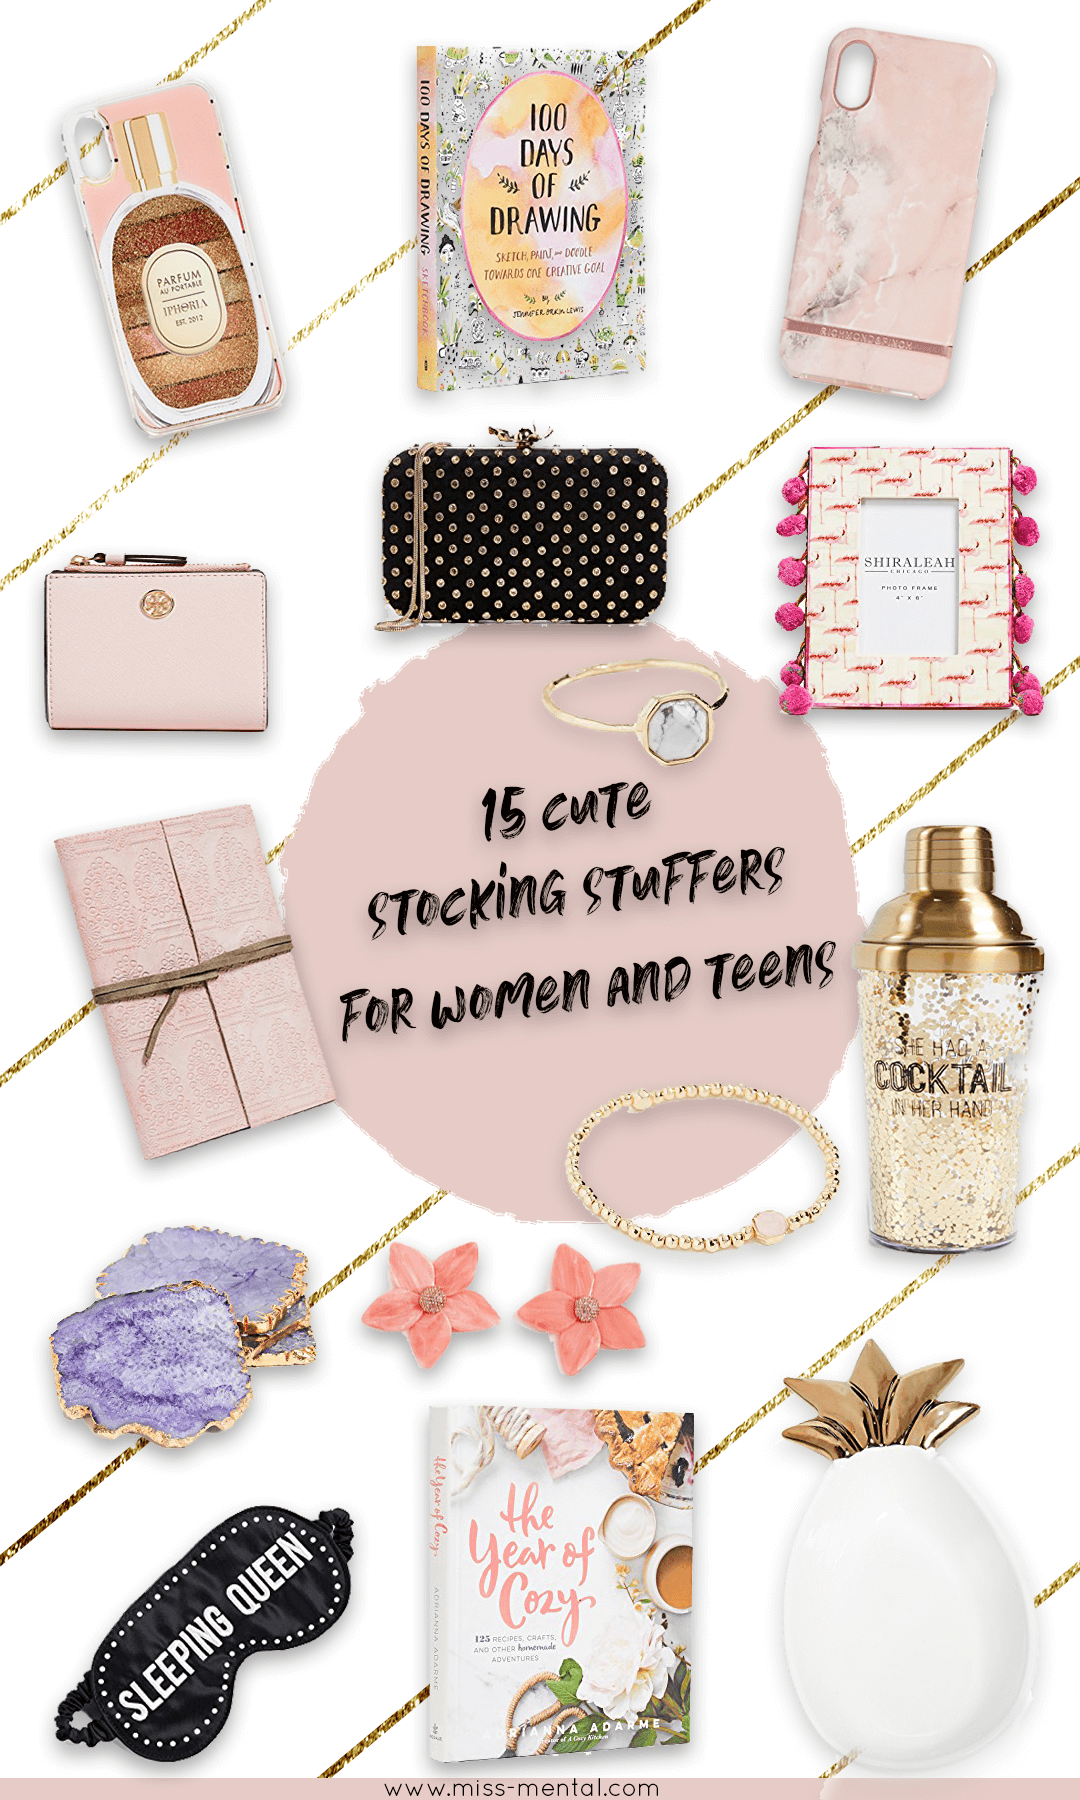 15 best stocking stuffer gift ideas for women and teens | Stocking ...